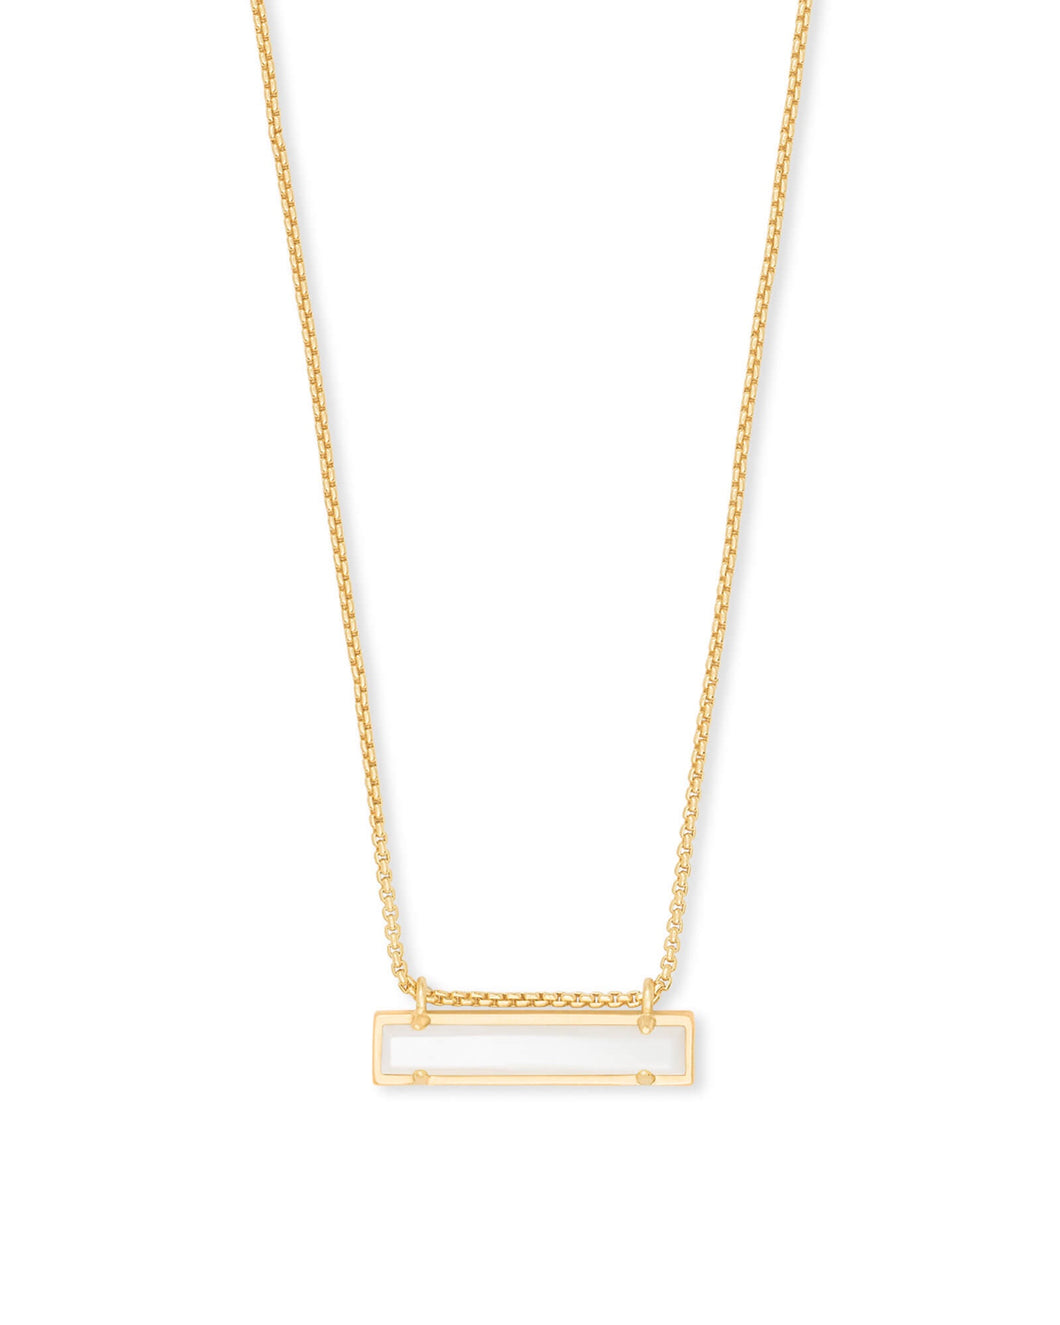 Leanor Gold Bar Necklace-Ivory Mother of Pearl